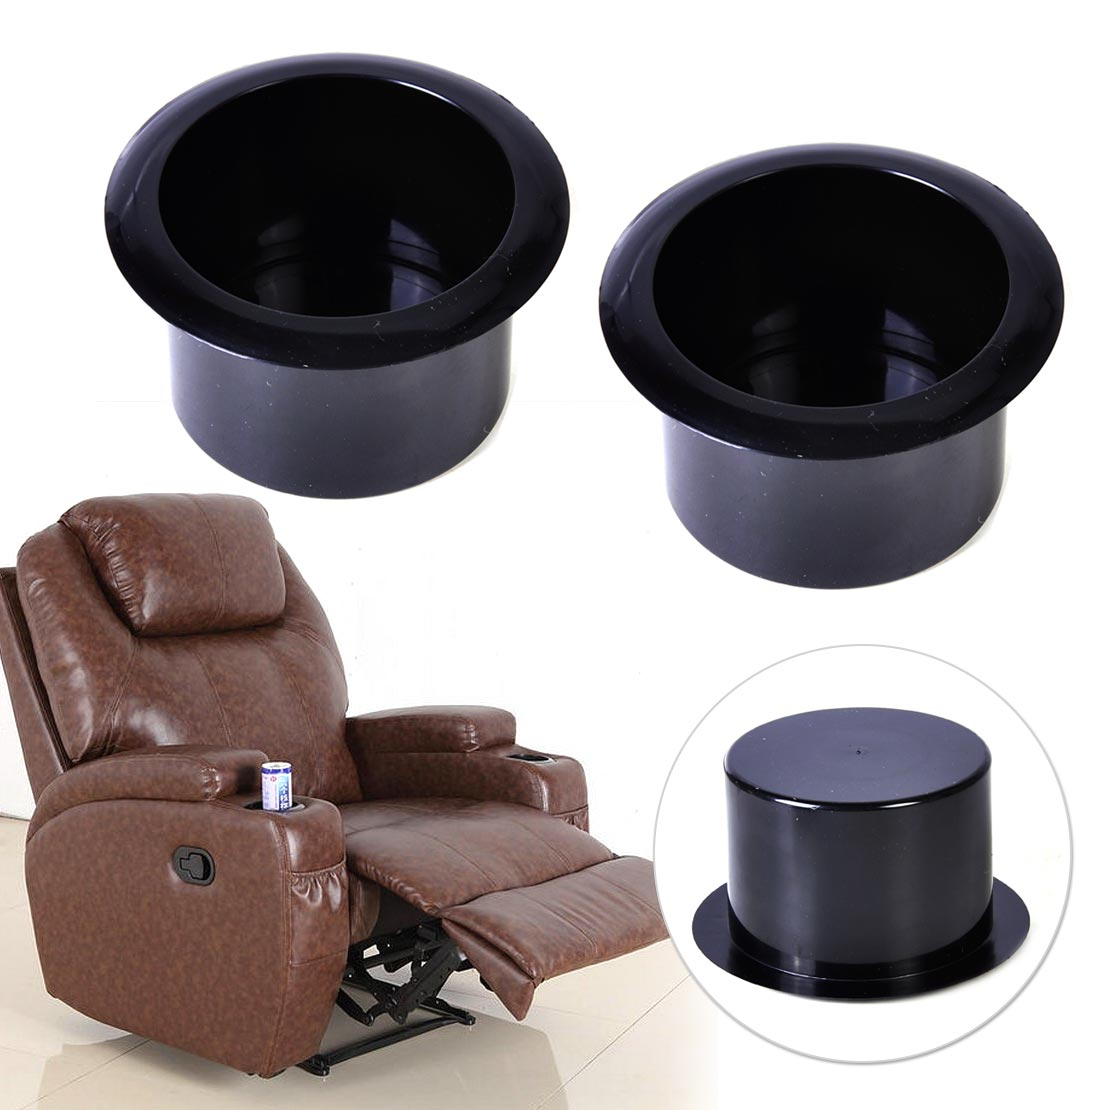 Sofa Cup Holder Insert Www Energywarden Net ~ Replacement Cup Holders For Sofa